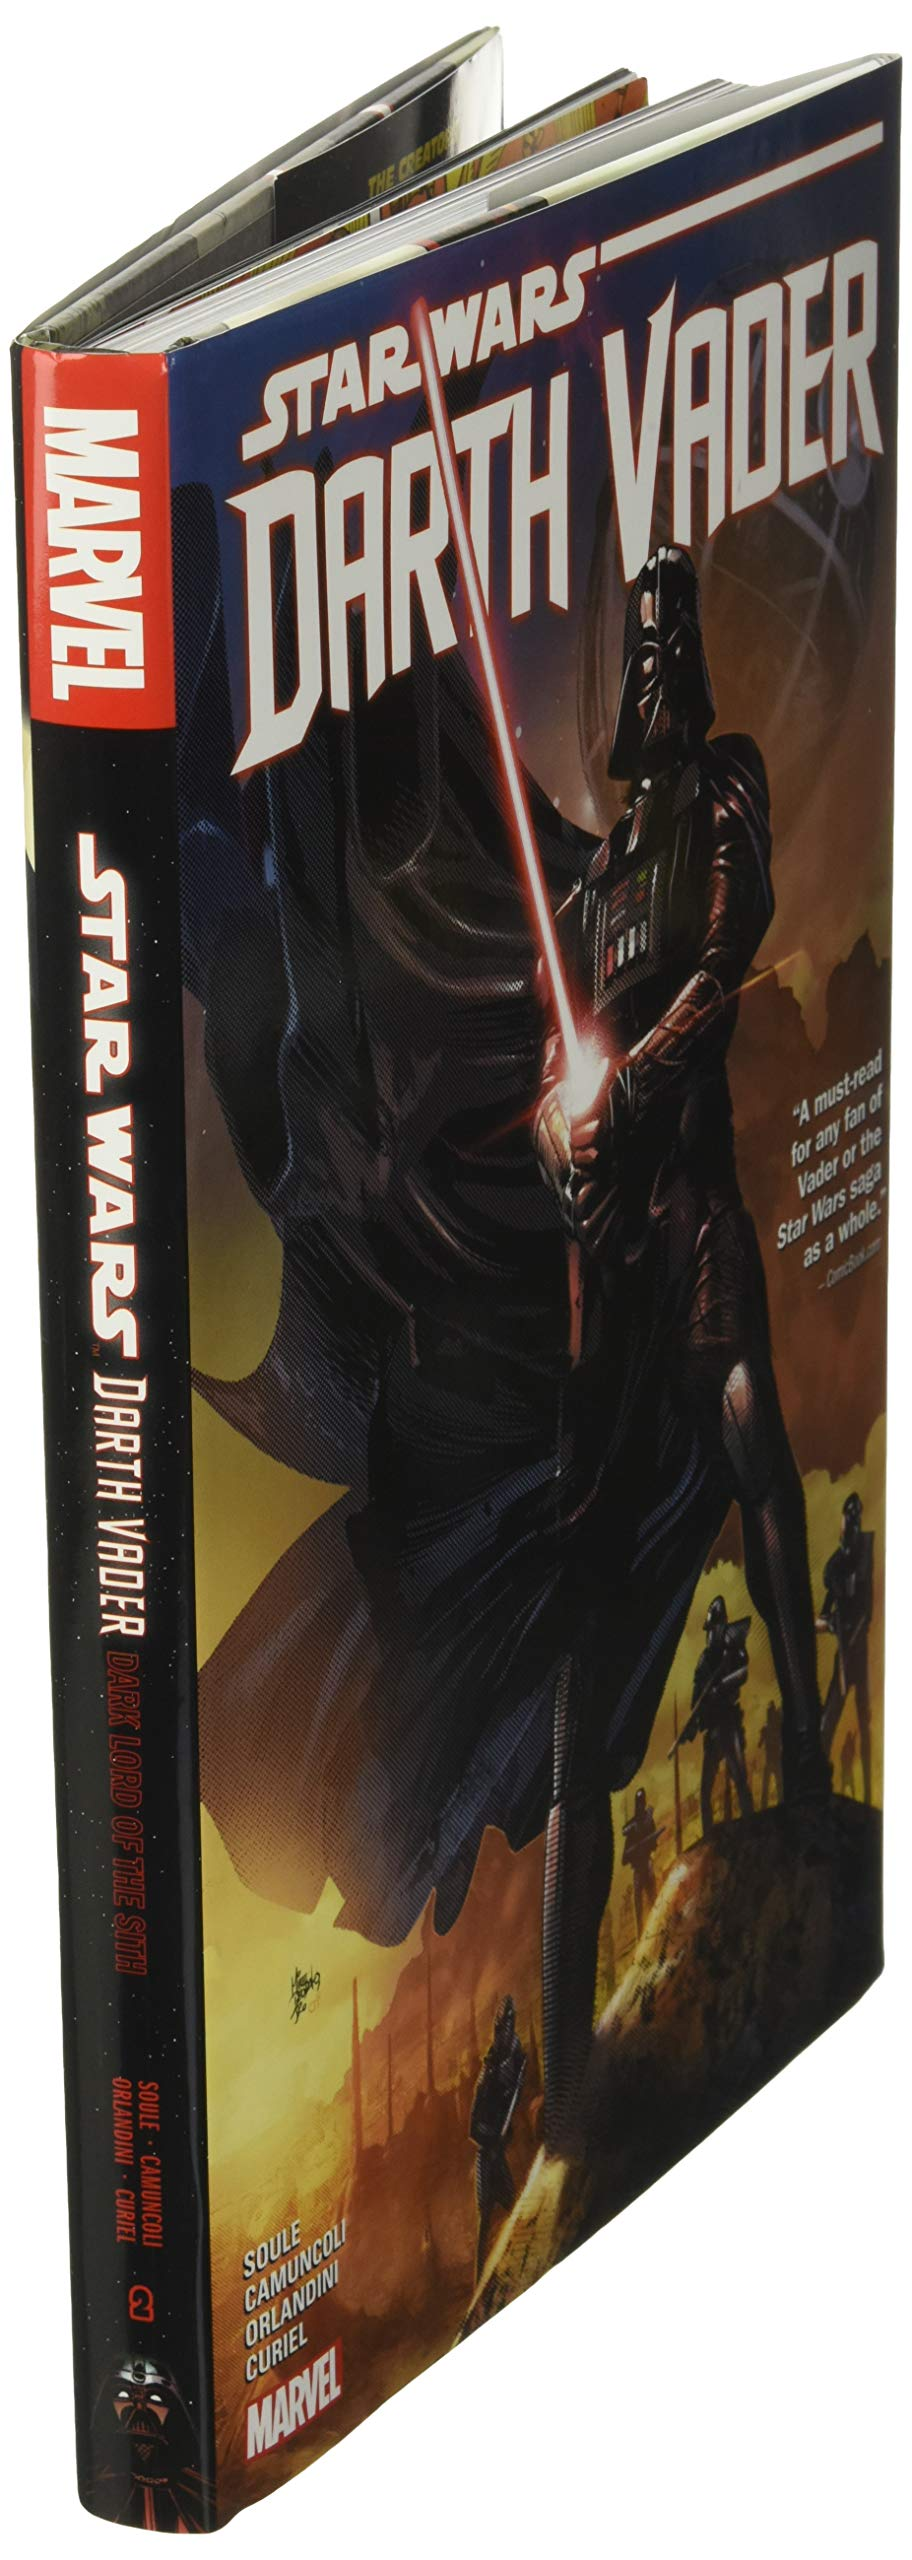 Star Wars Darth Vader Dark Lord Of The Sith Vol 2 Br